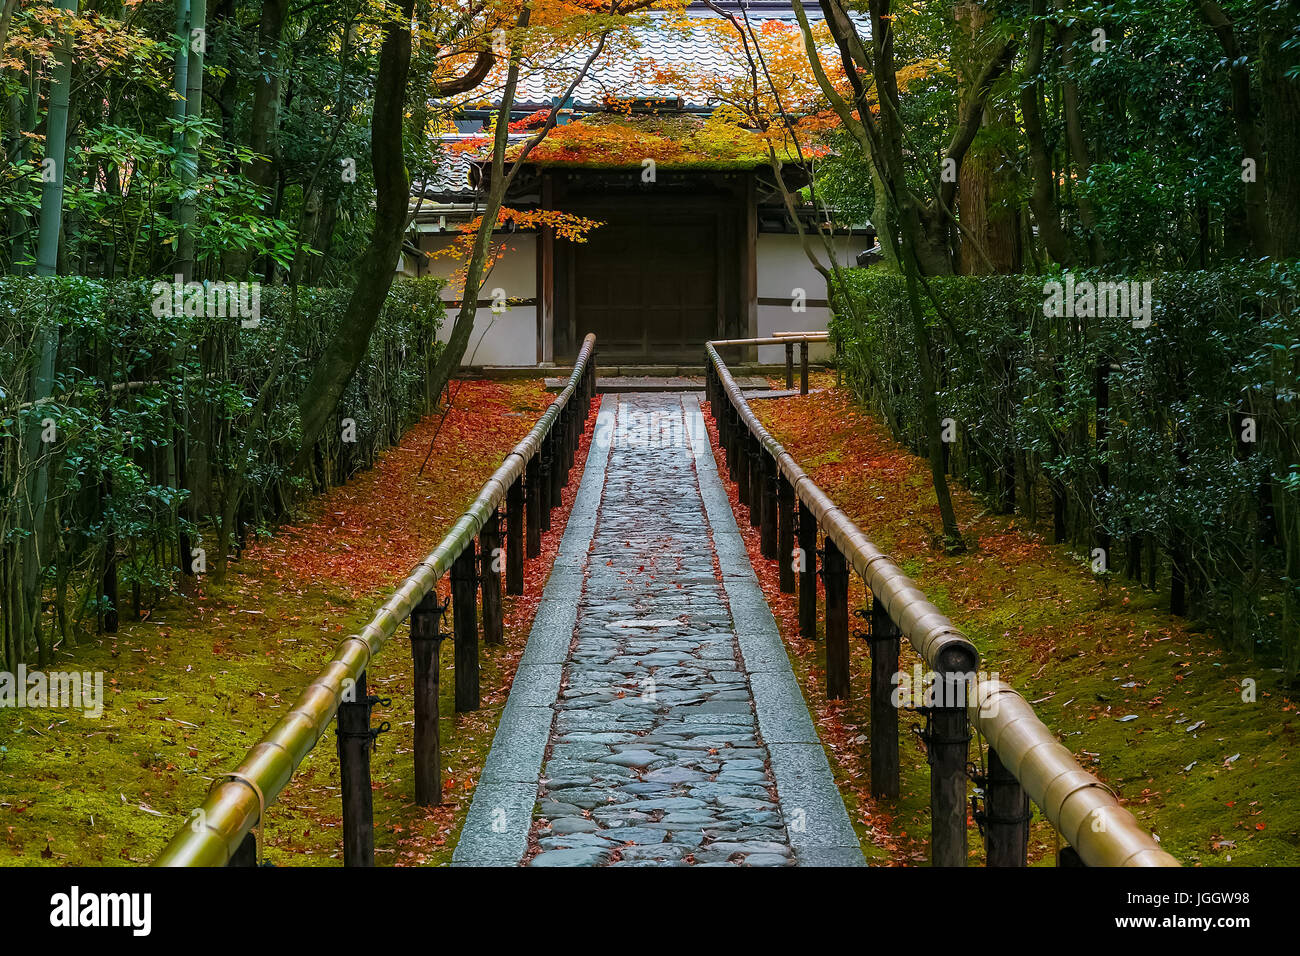 Colorful Autumn at Koto-inTemple in Kyoto, Japan - Stock Image